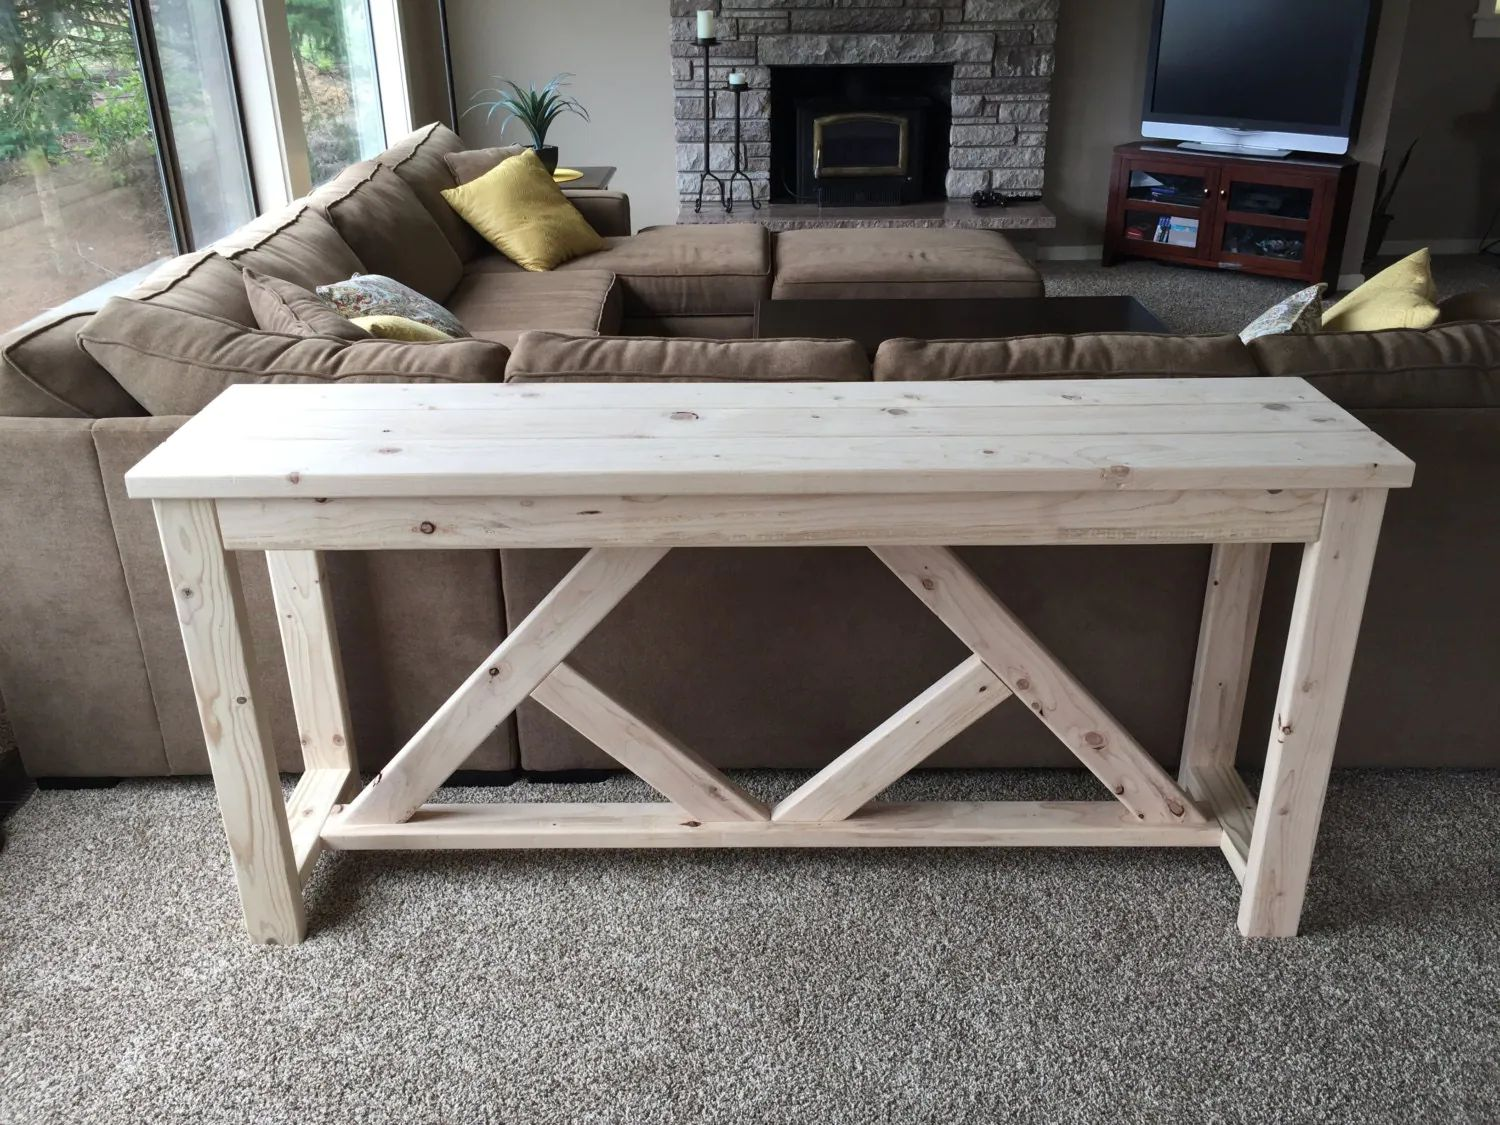 Rustic buffet table with diamond support rustic console table farmhouse table rustic table fixer upper decor shabby chic furniture